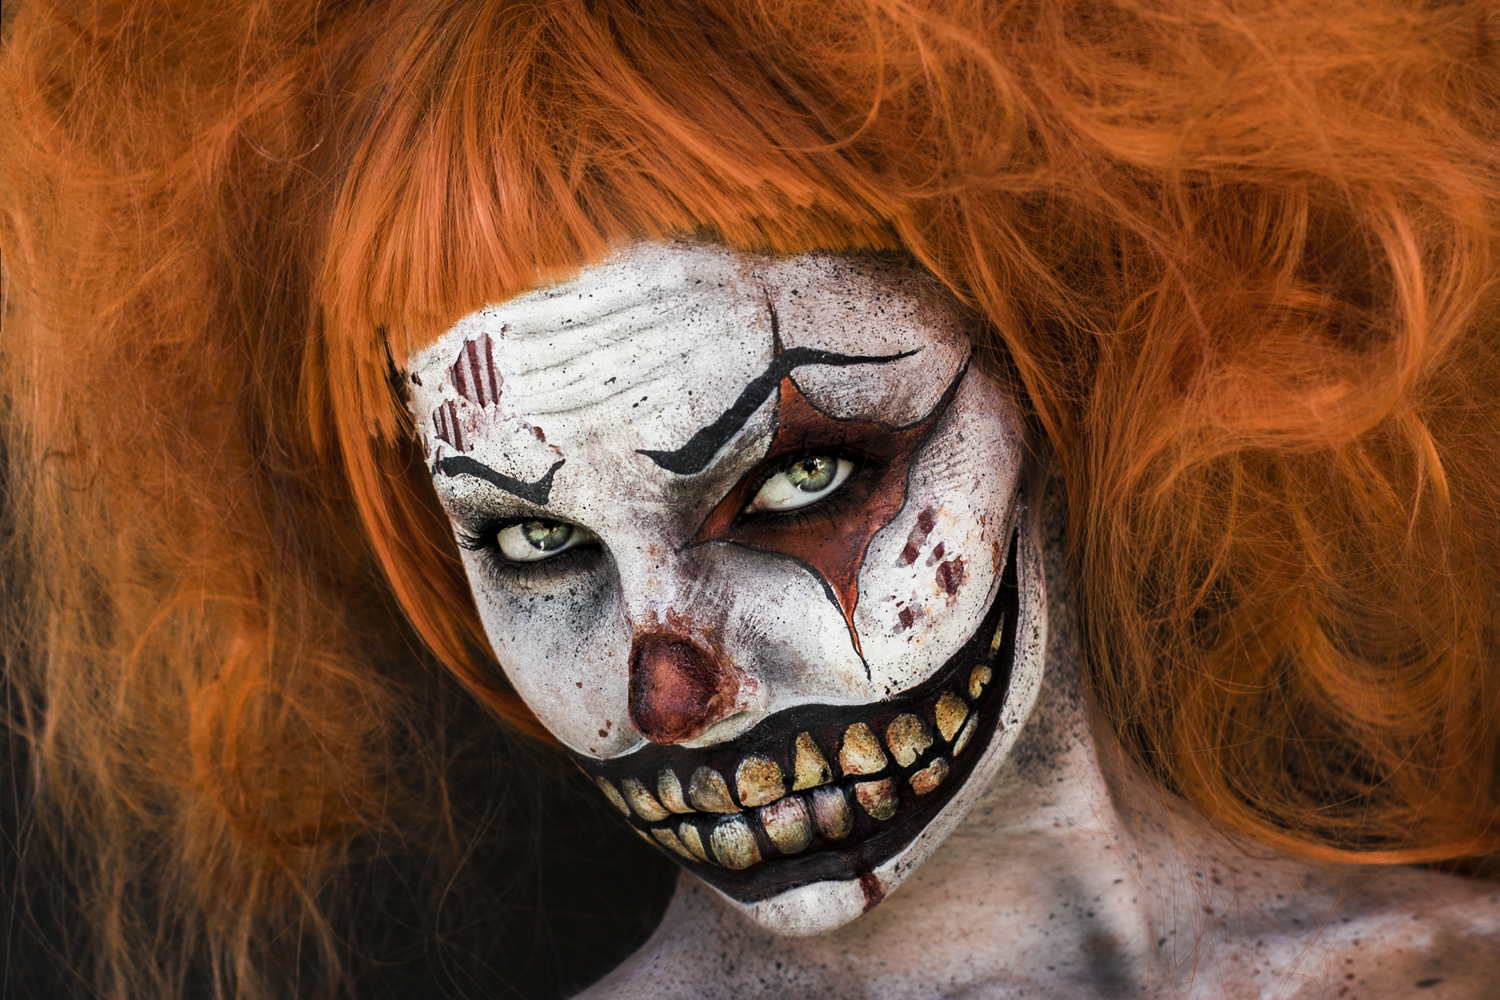 wisted clown character makeup celebrating the dark side of the circusPhotography: Donatella Parisini Makeup: Elvis Schmoulianoff